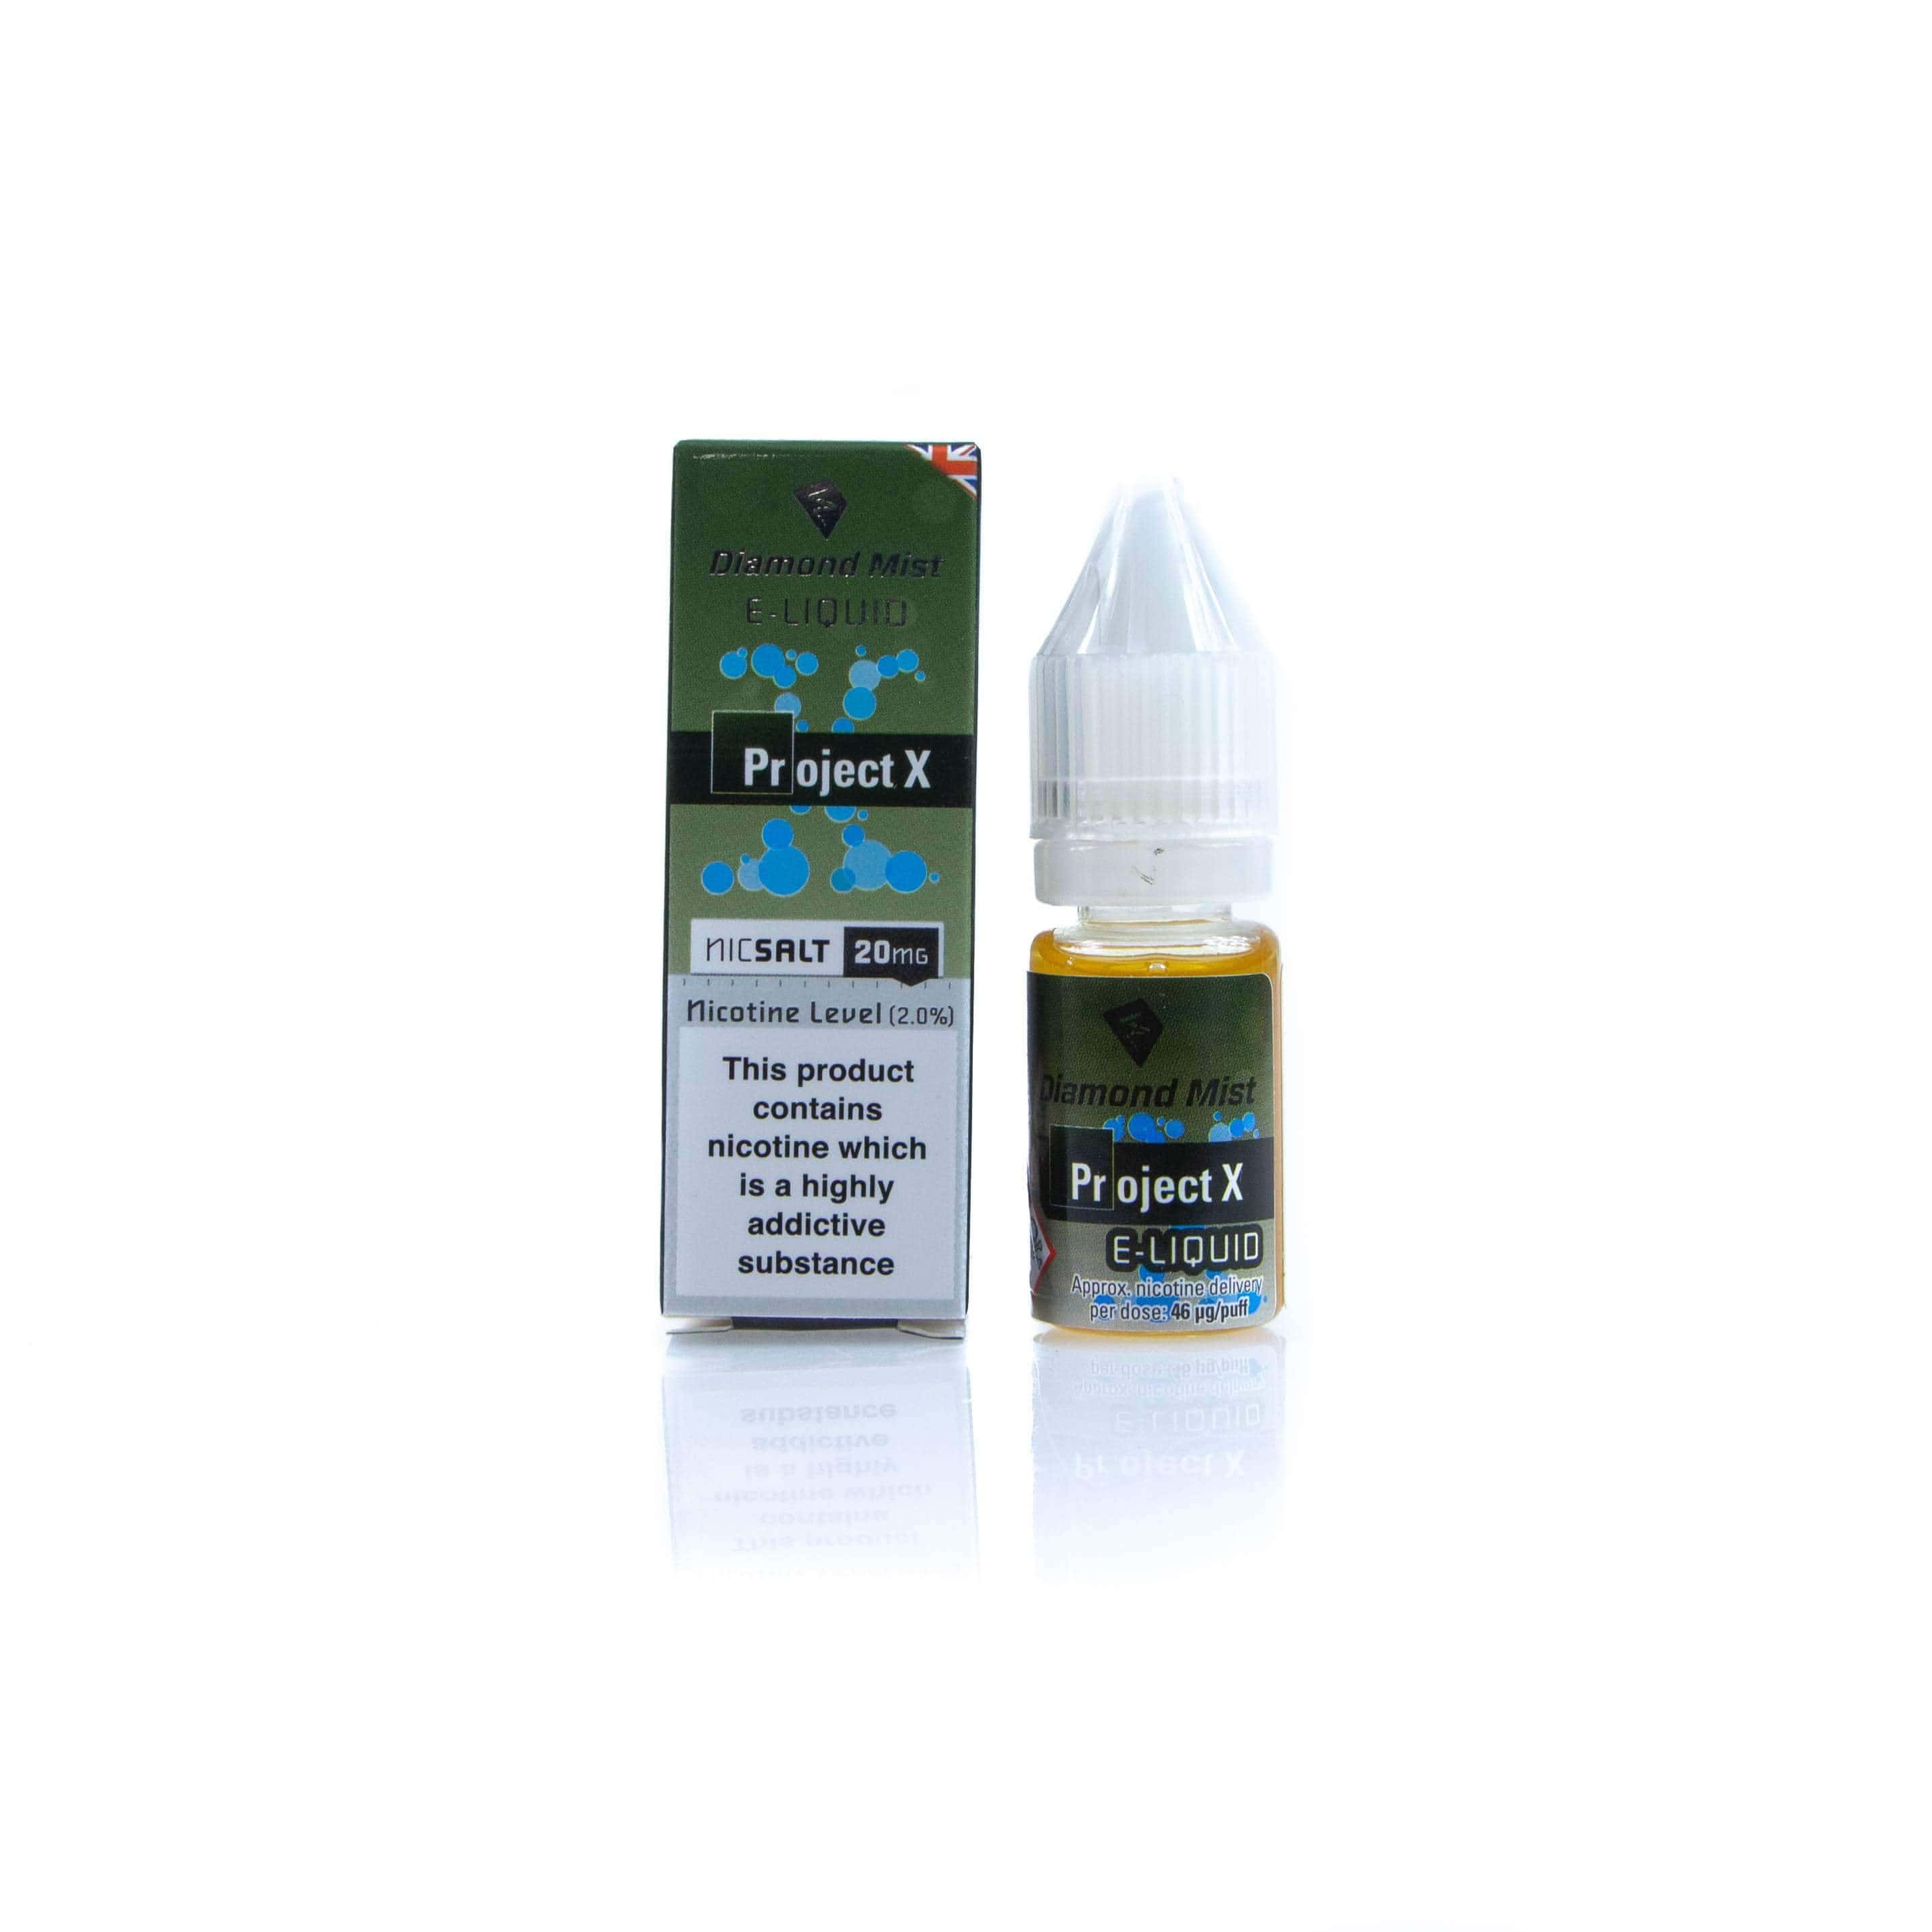 Diamond Mist E-Liquid East Project X Nic Salt grey-haze.myshopify.com